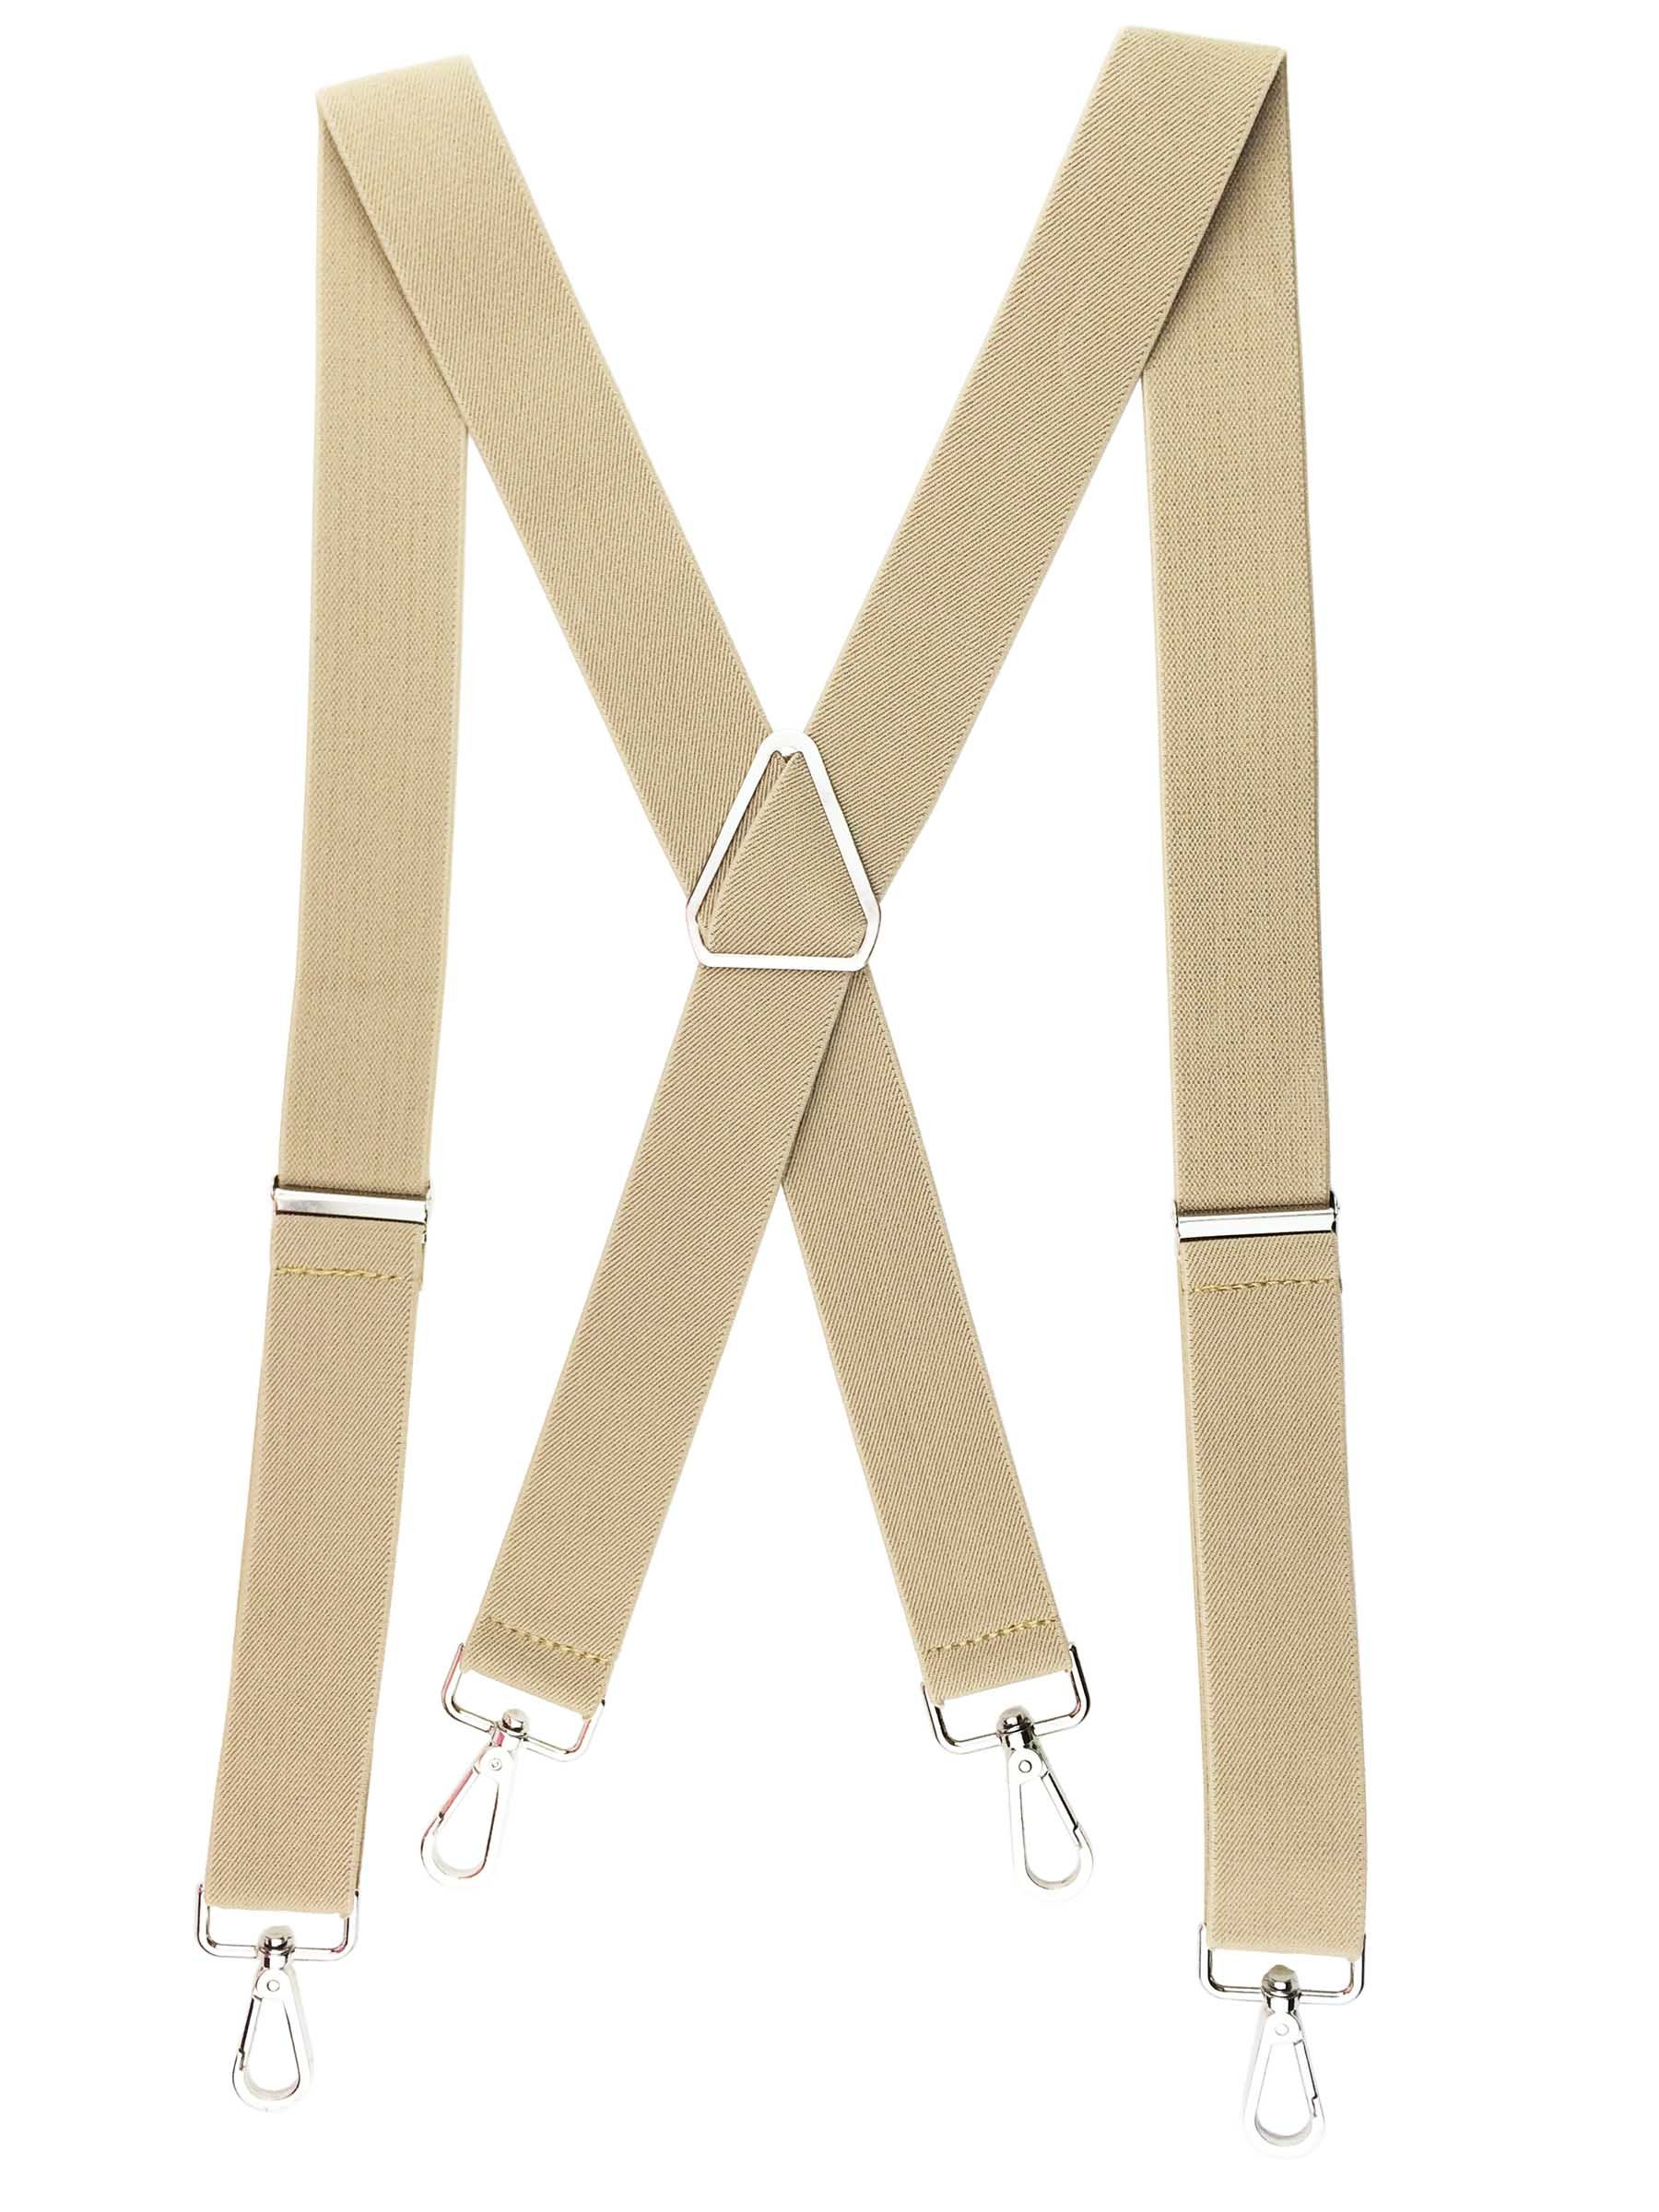 Romanlin Mens Suspenders with Hooks on Belt Loops Heavy Duty Big and Tall Braces Tan